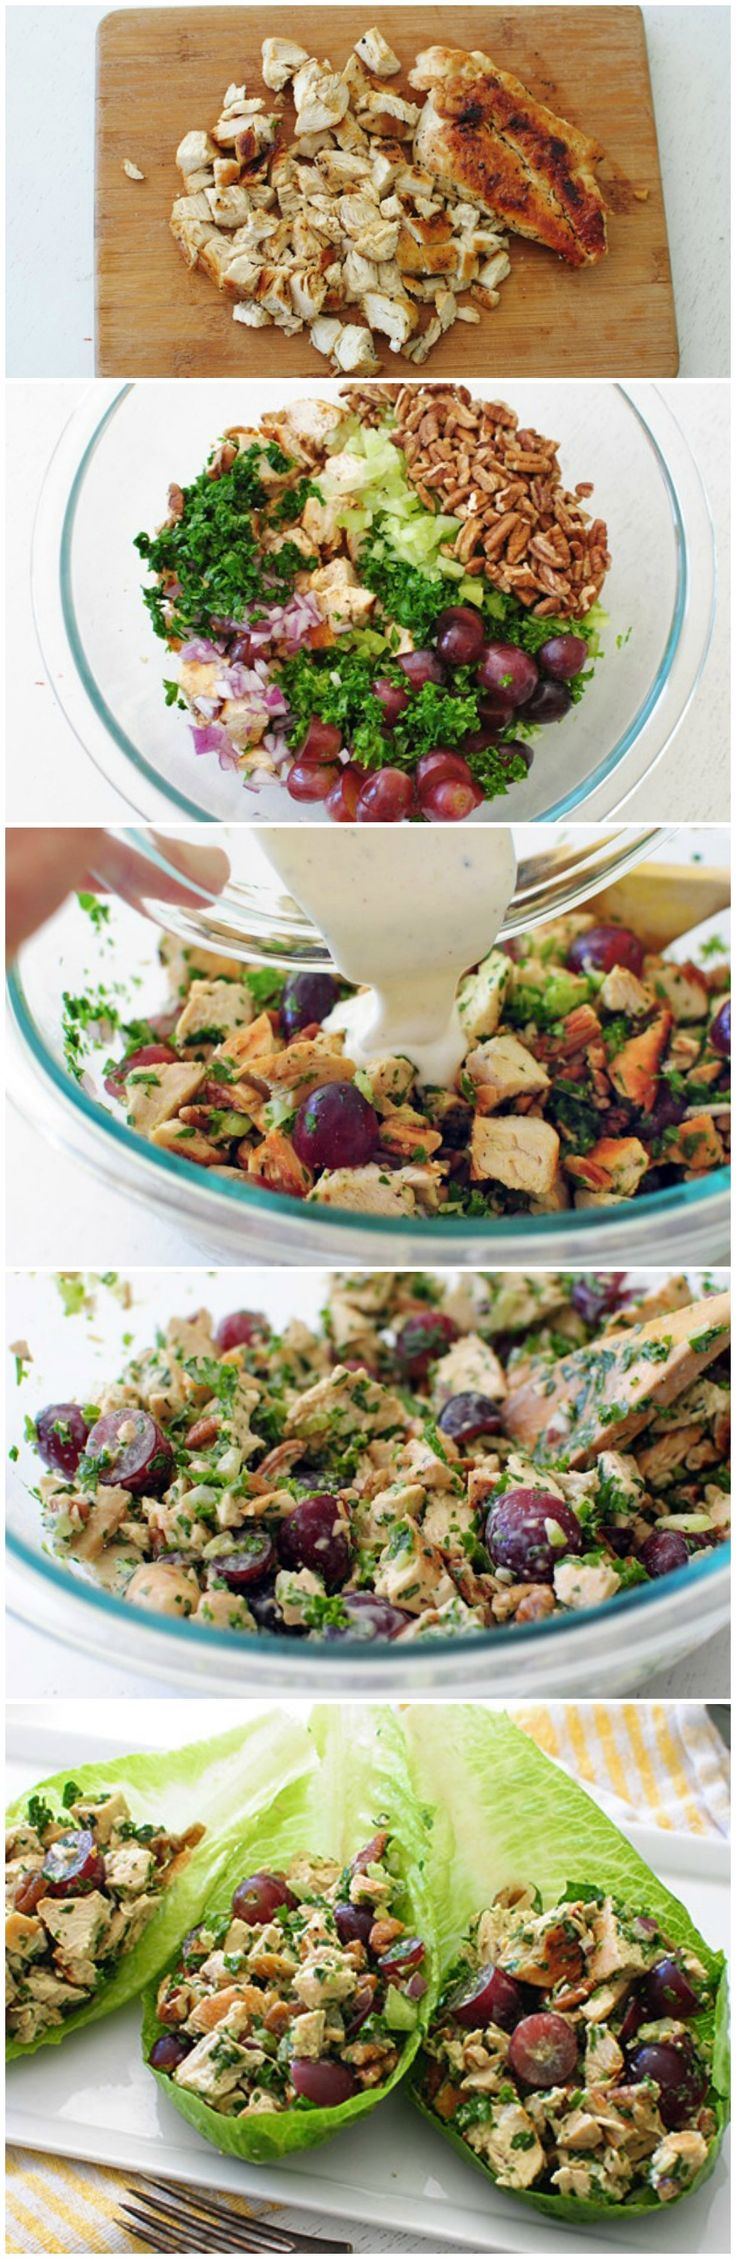 online jewlery Pecan Chicken Salad Recipe   this has a light yogurt dressing    So much goodness  C you will loooooooove this